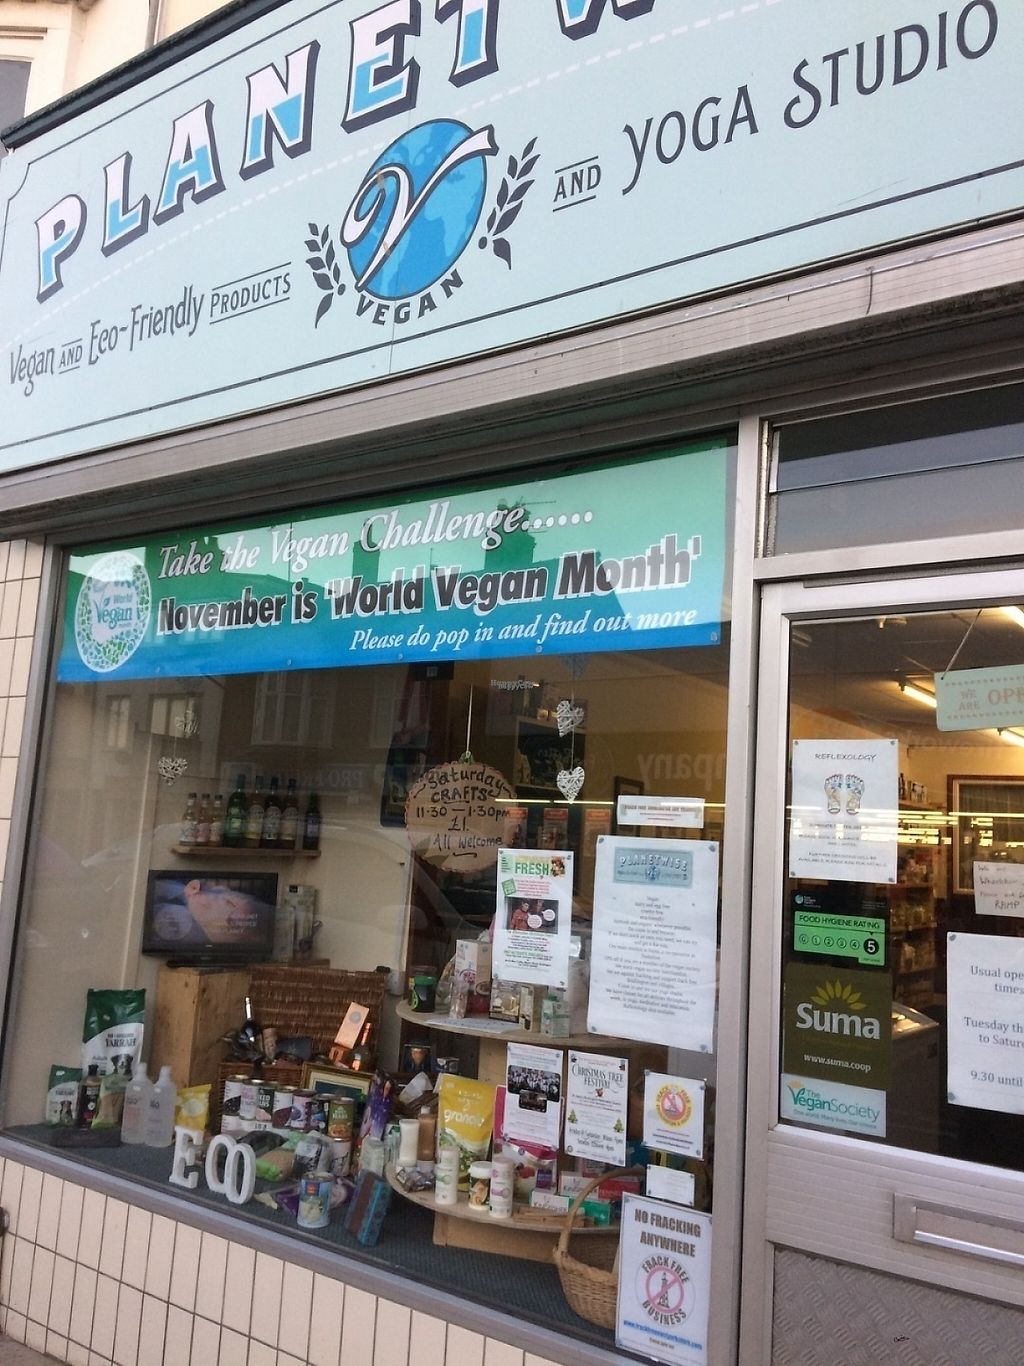 """Photo of Planetwise & Yoga Studio  by <a href=""""/members/profile/MaryElliott"""">MaryElliott</a> <br/>We are in the centre of Bridlington opposite Yorkshire trading and around the corner from whites bakehouse <br/> February 3, 2017  - <a href='/contact/abuse/image/76478/221563'>Report</a>"""